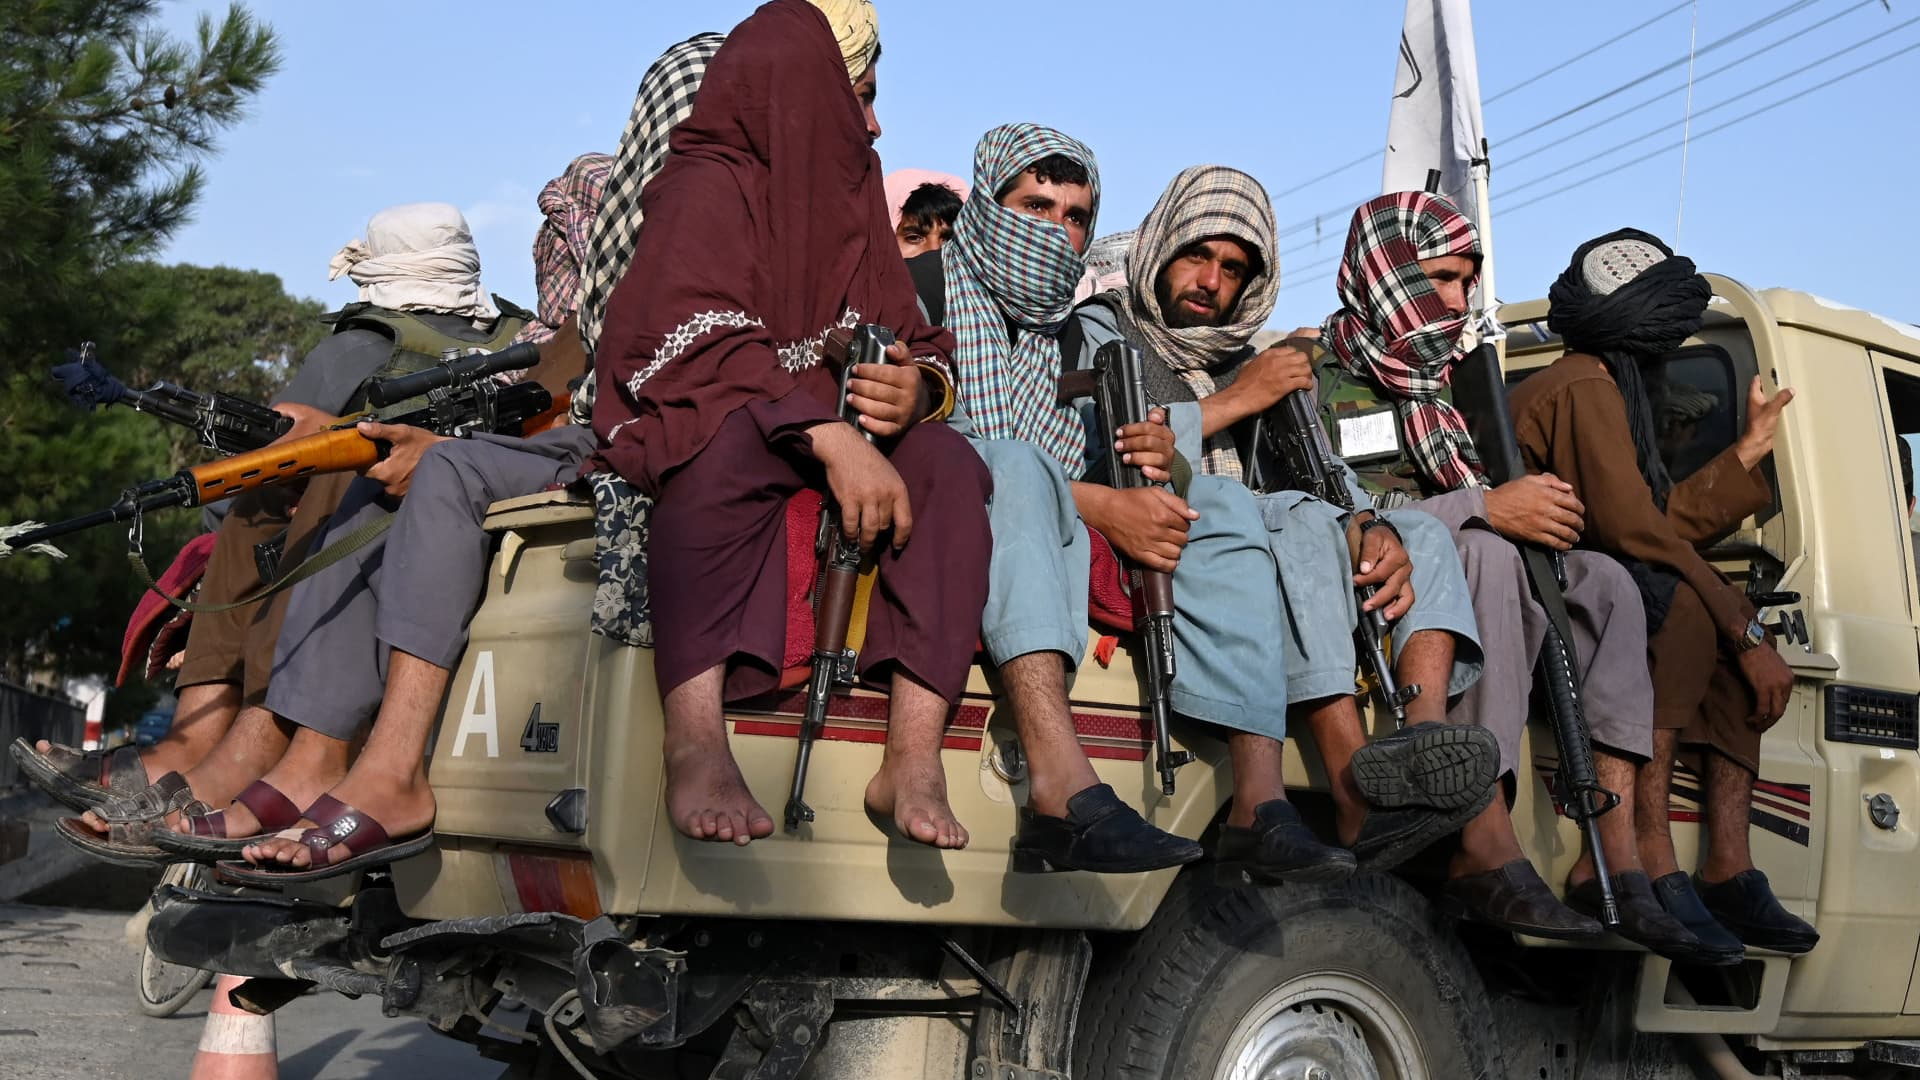 Taliban fighters in a vehicle patrol the streets of Kabul on August 23, 2021 as in the capital, the Taliban have enforced some sense of calm in a city long marred by violent crime, with their armed forces patrolling the streets and manning checkpoints.